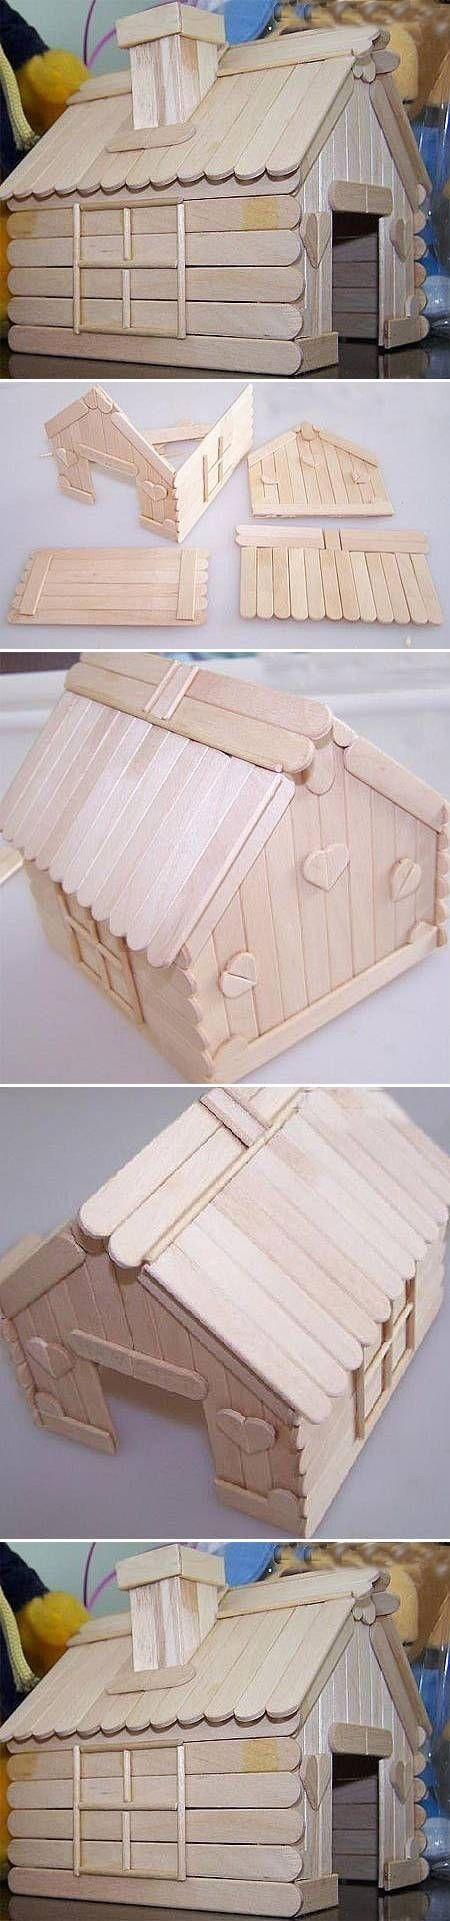 Diy popsicle stick house house diy craft crafts easy crafts diy diy popsicle stick house house diy craft crafts easy crafts diy ideas diy crafts do it solutioingenieria Images